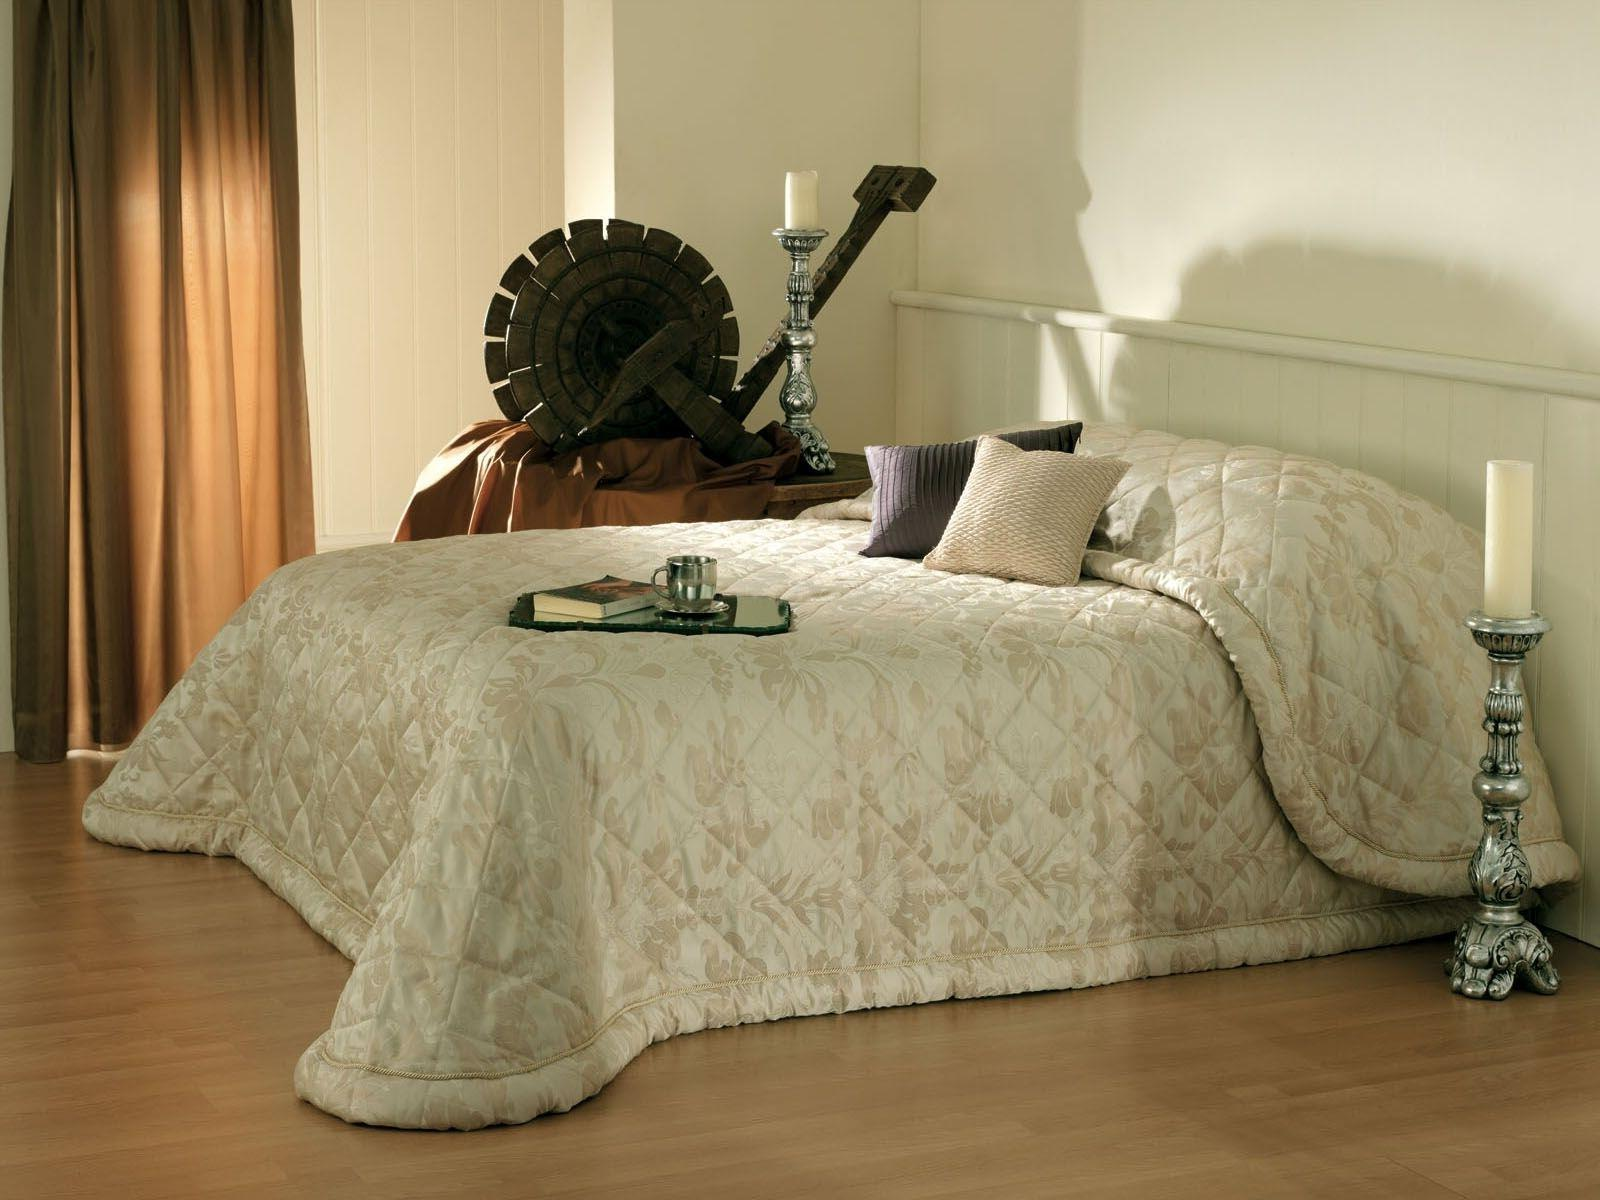 Bianca Provincial Gold Bedspread Set in All Sizes